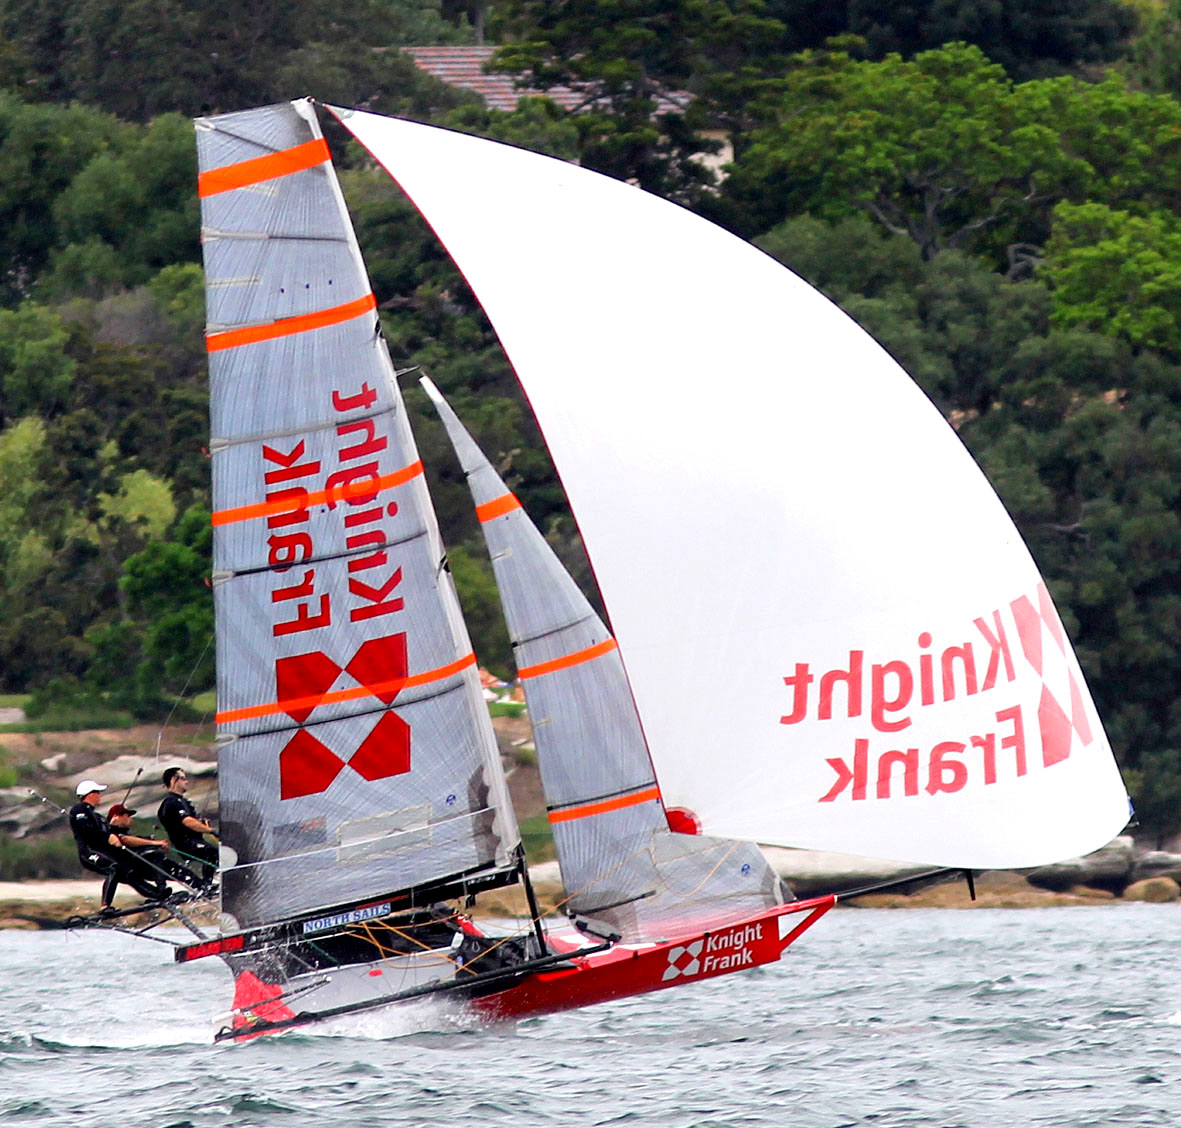 Knight Frank, one of the new skiffs built over the past three seasons